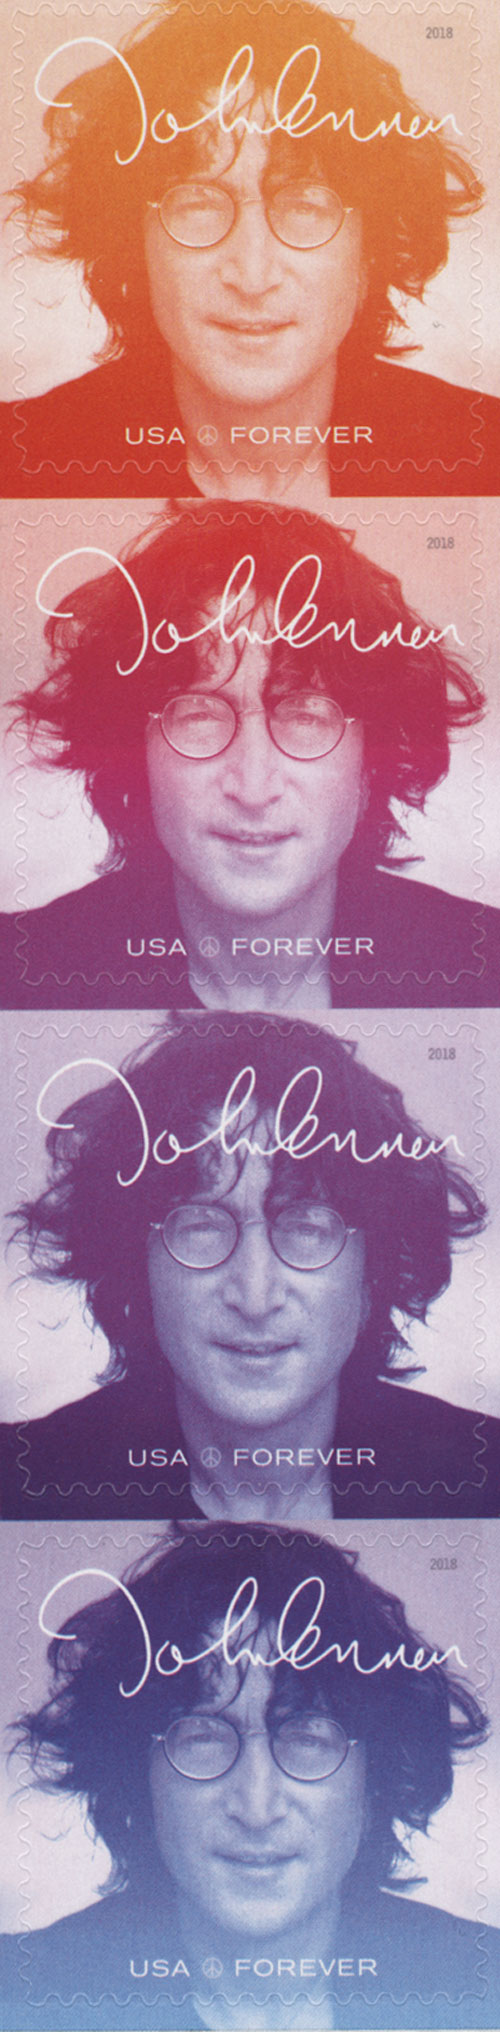 2018 First-Class Forever Stamp - Music Icons Series: John Lennon